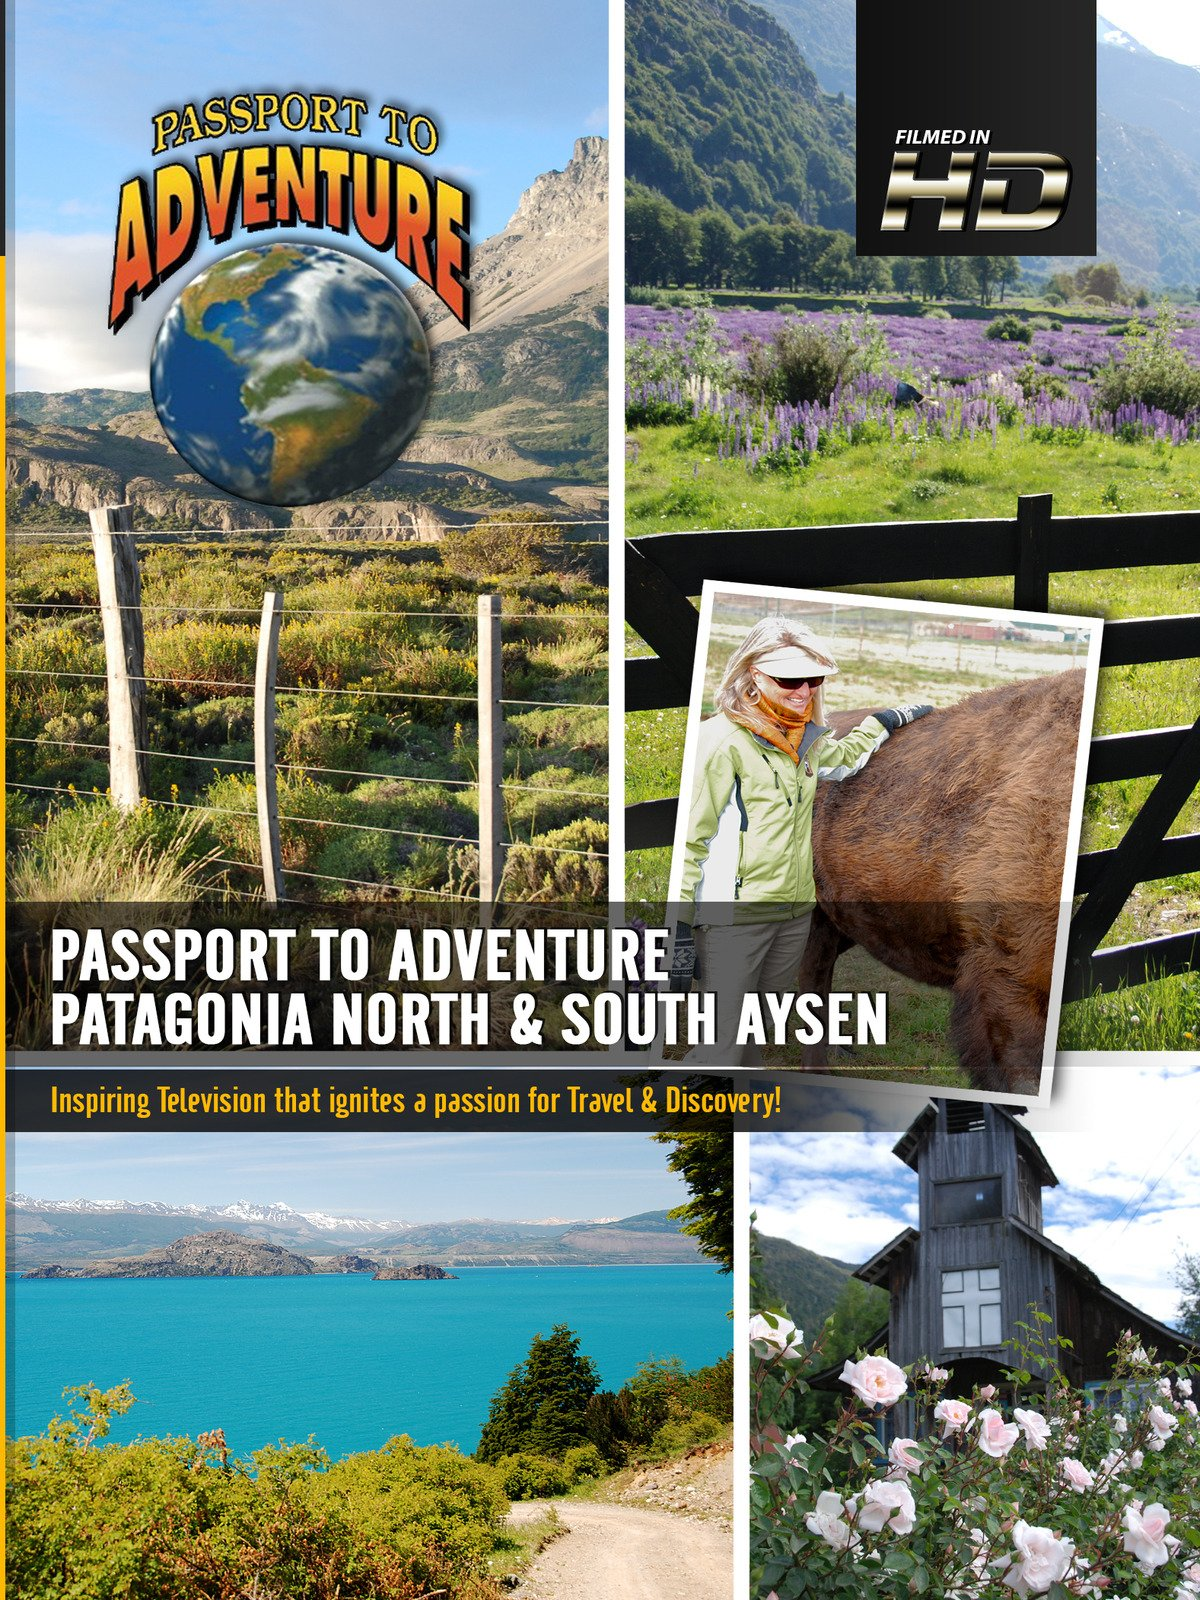 Passport to Adventure Patagonia North & South Aysen